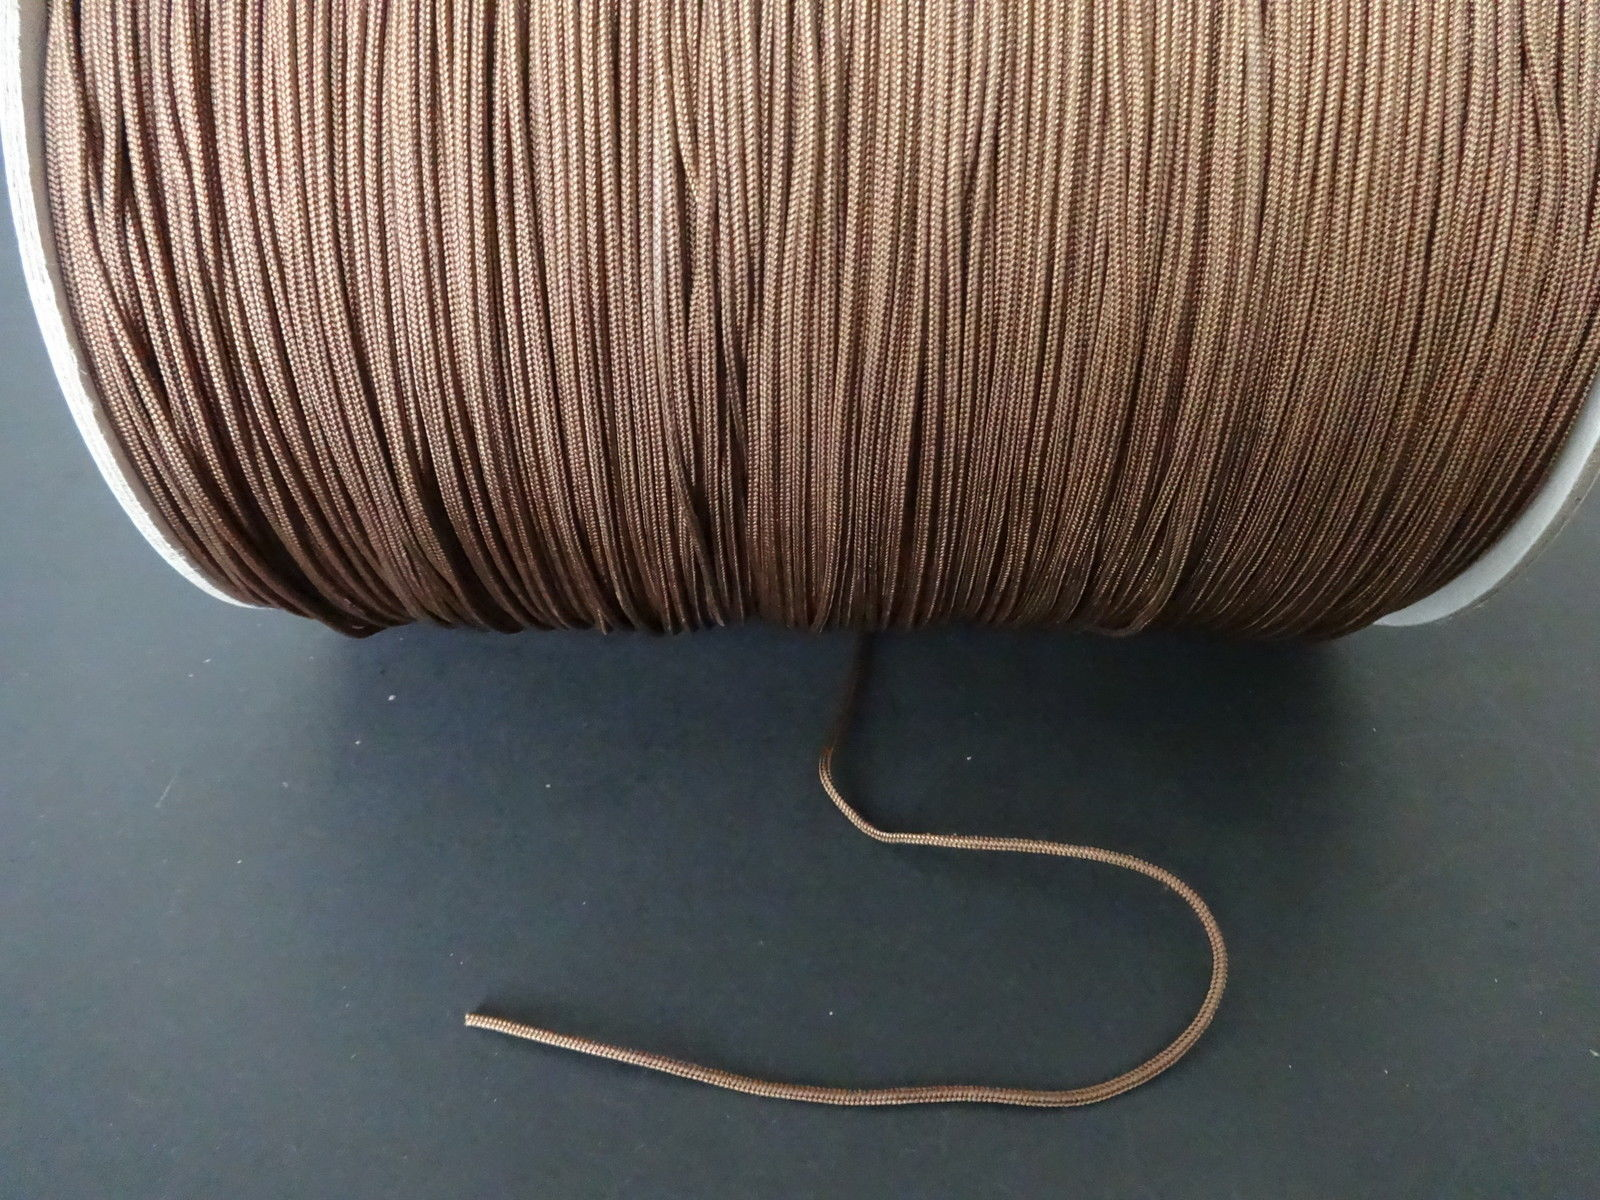 50 FEET:1.8mm BROWNSTONE LIFT CORD for ROMAN/PLEATED shades &HORIZONTAL blind